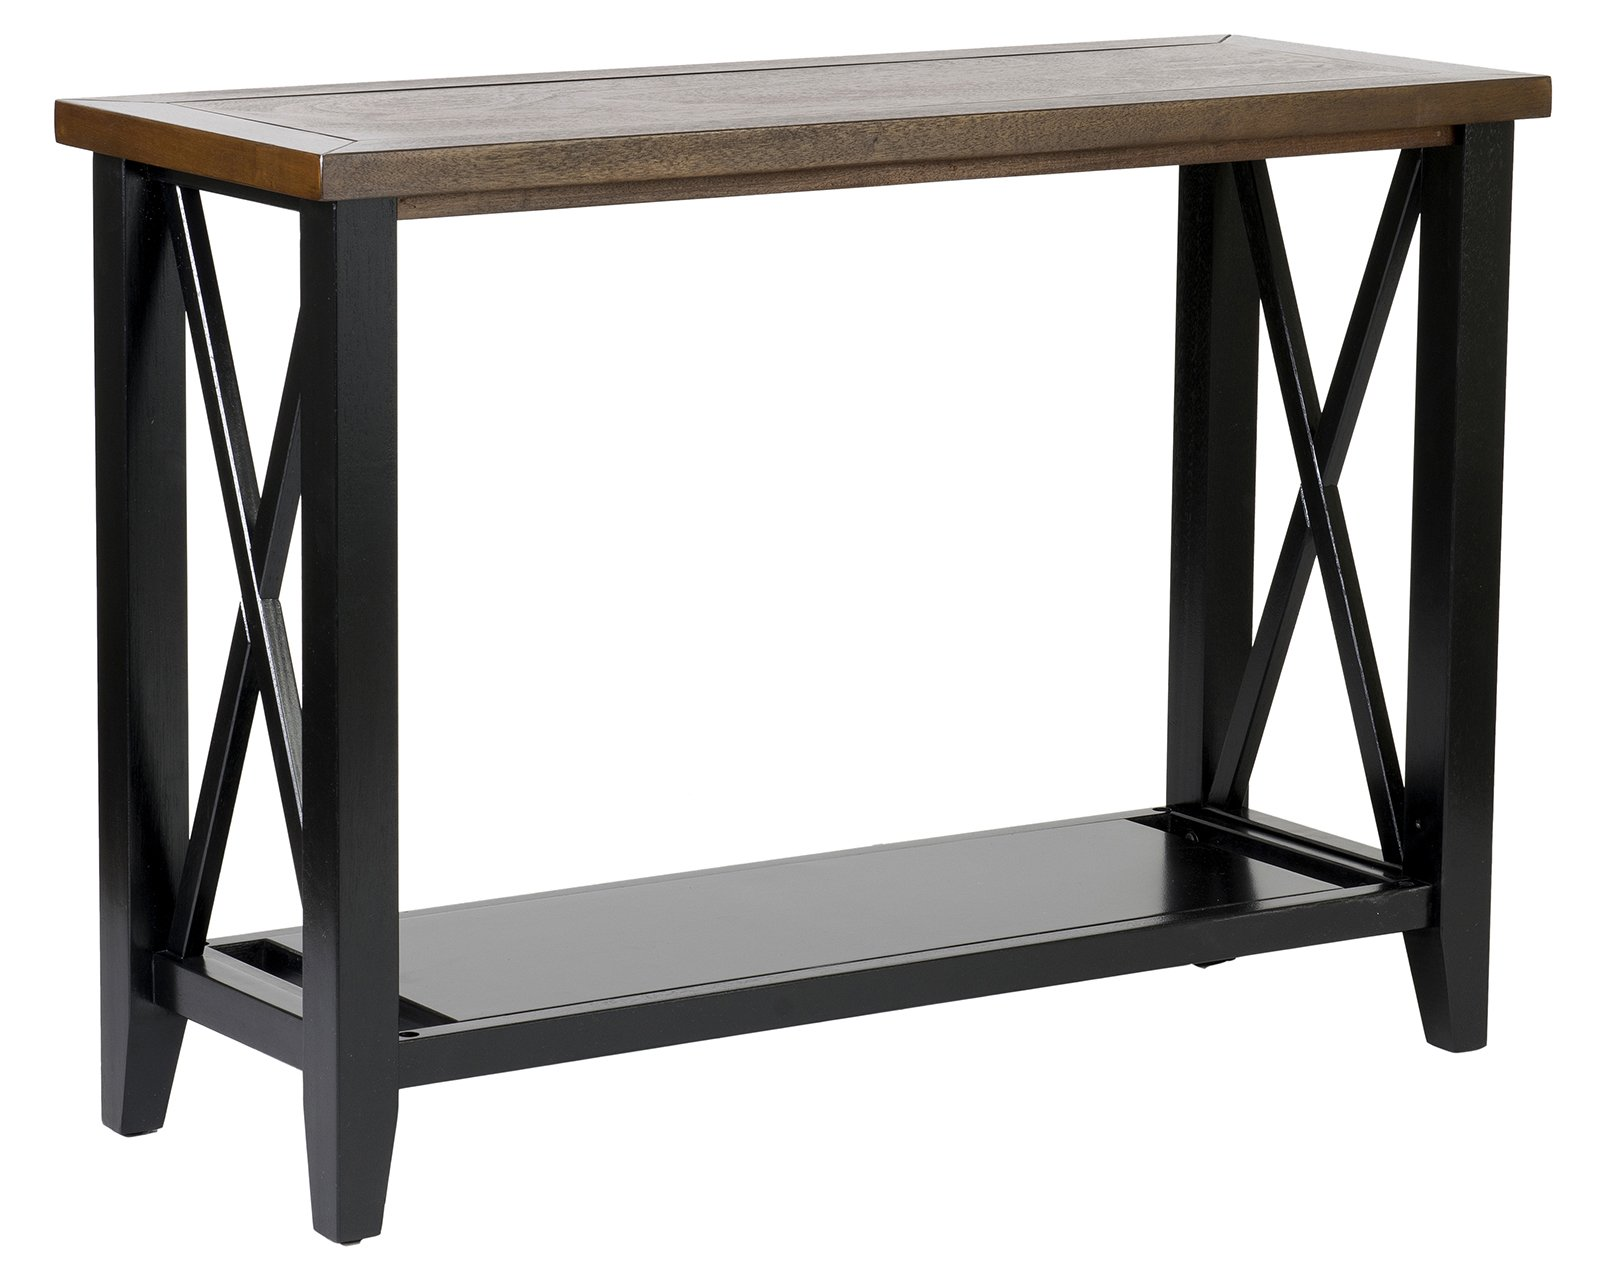 East At Main TT-CST-68101-ES Keiko Console Table, 15.76'' x 42'' x 30'', Espresso Brown